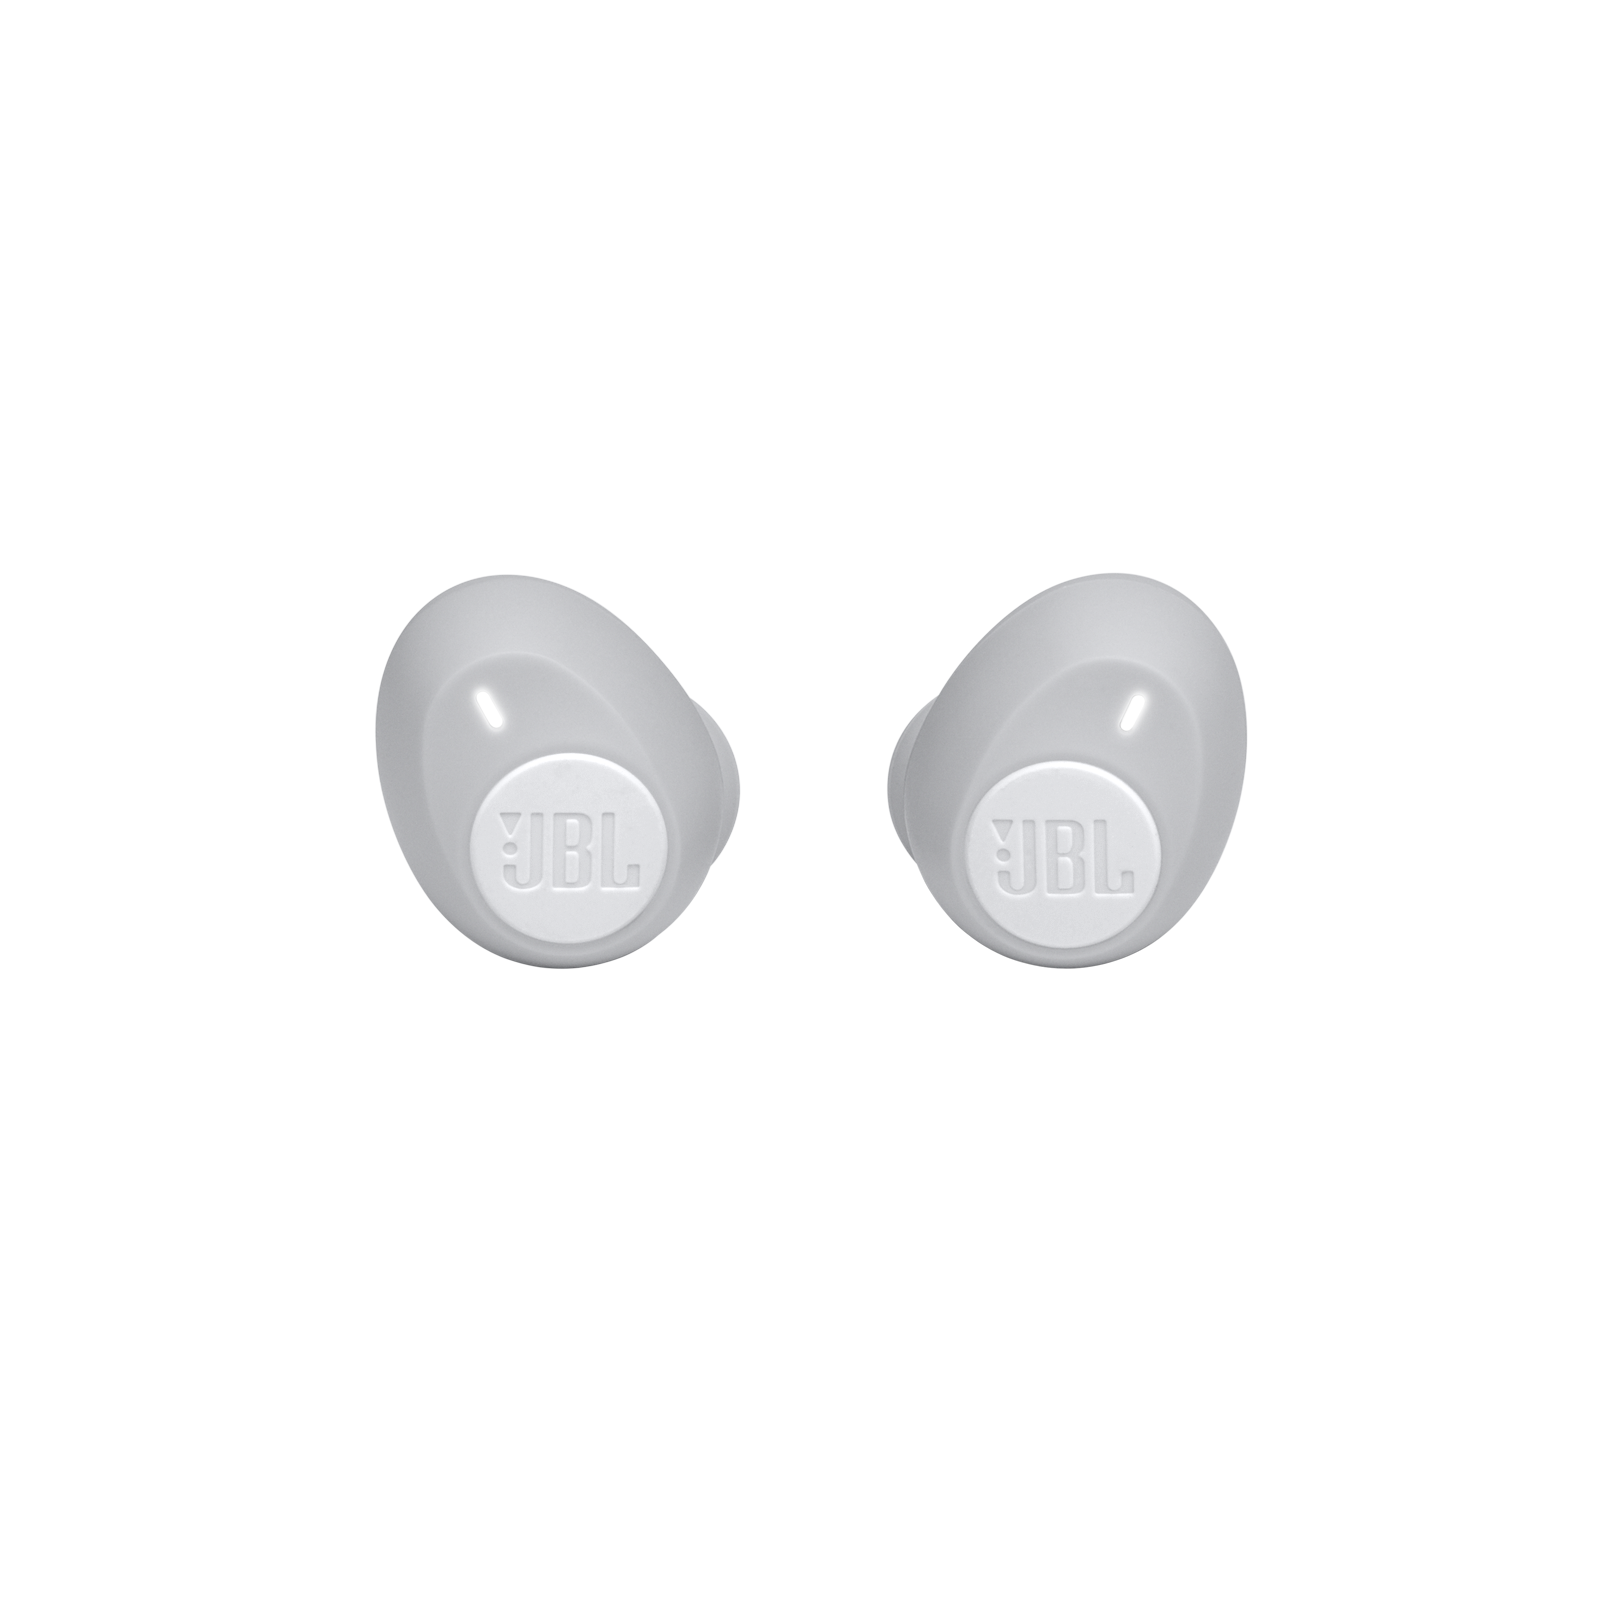 JBL Tune 115TWS - White - True wireless earbuds - Front